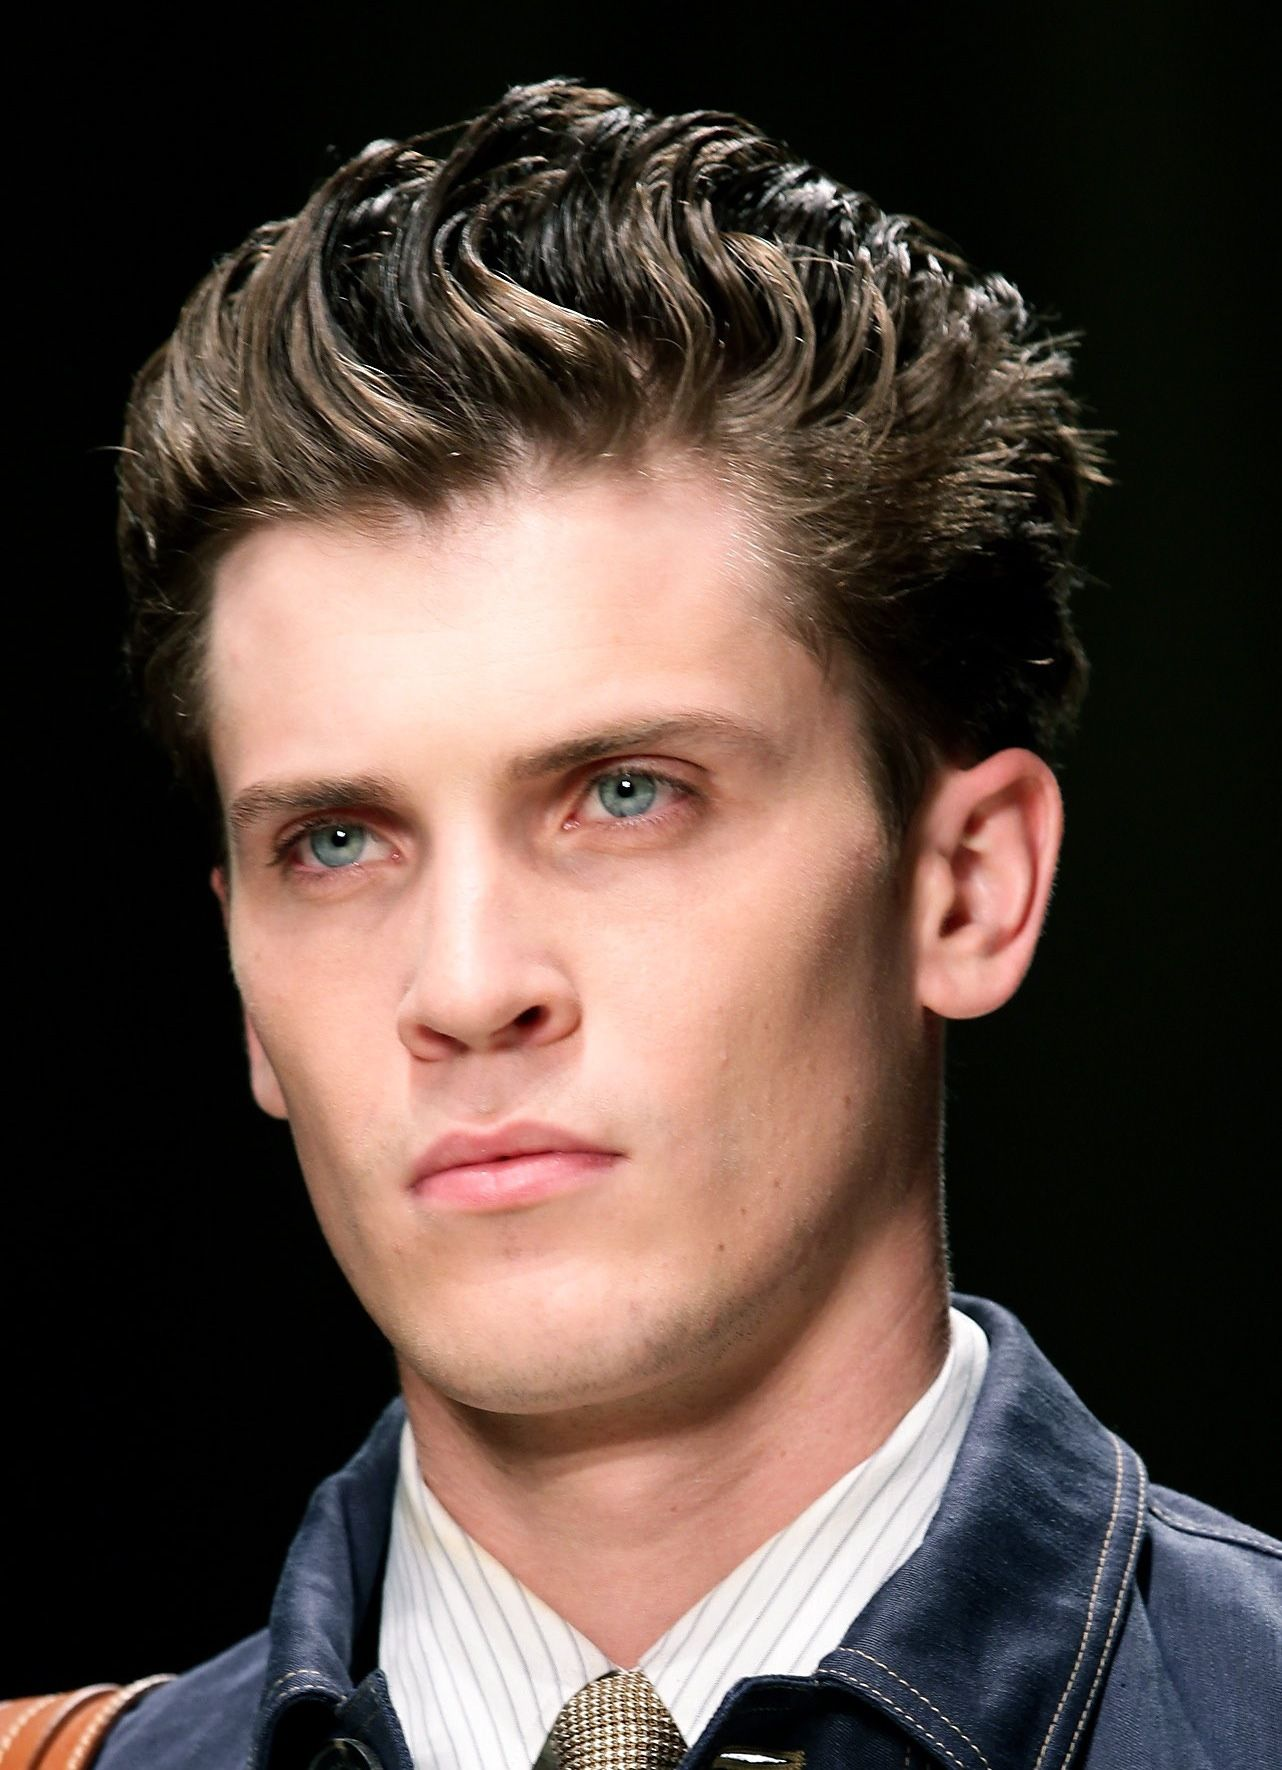 Men's Brushed Back Hairstyle (With images) Thick hair styles